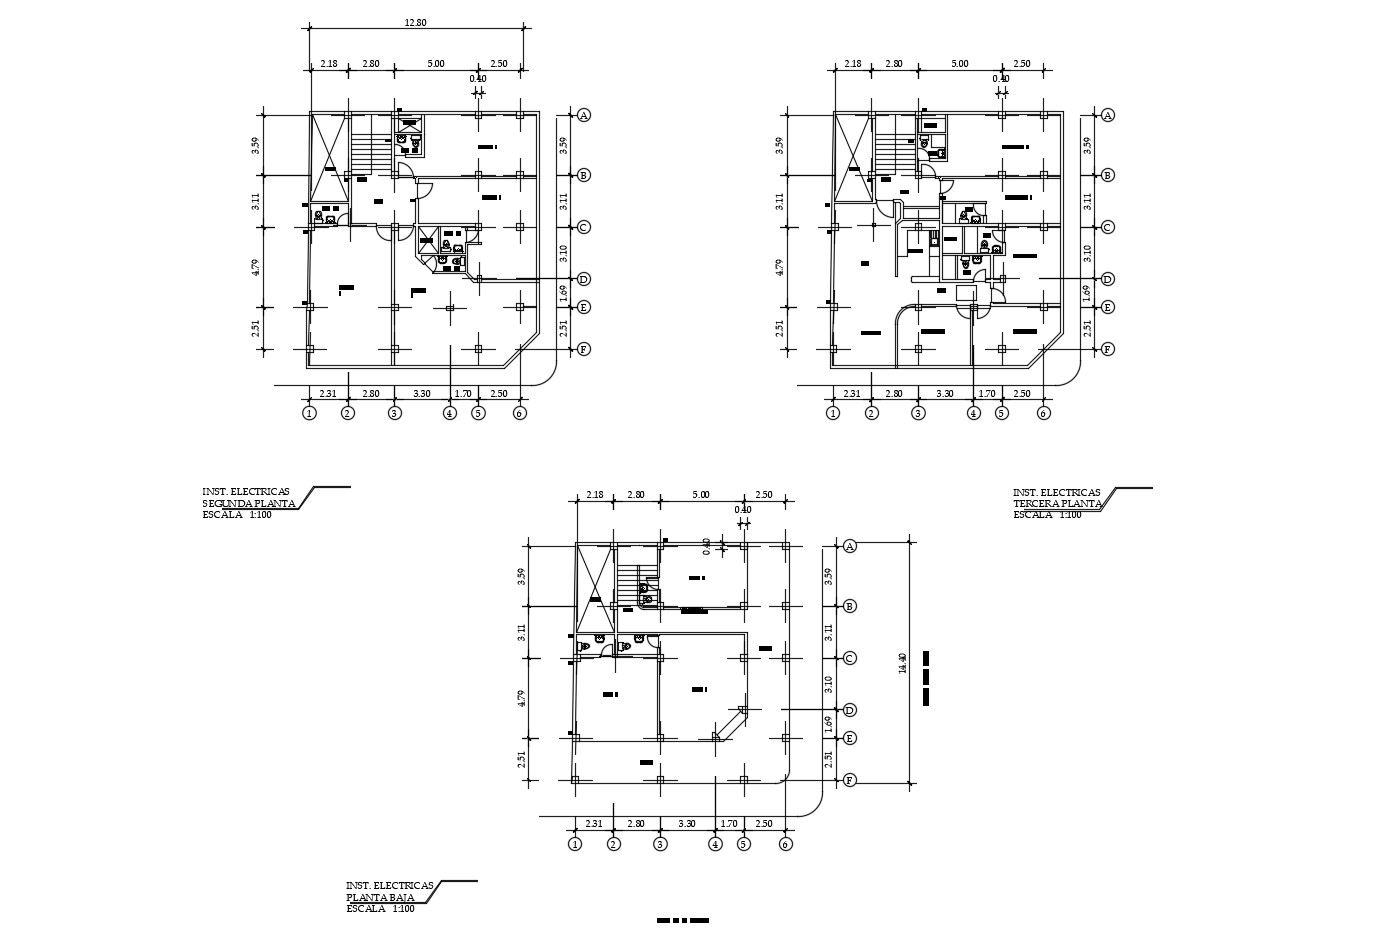 Building plans  in DWG file